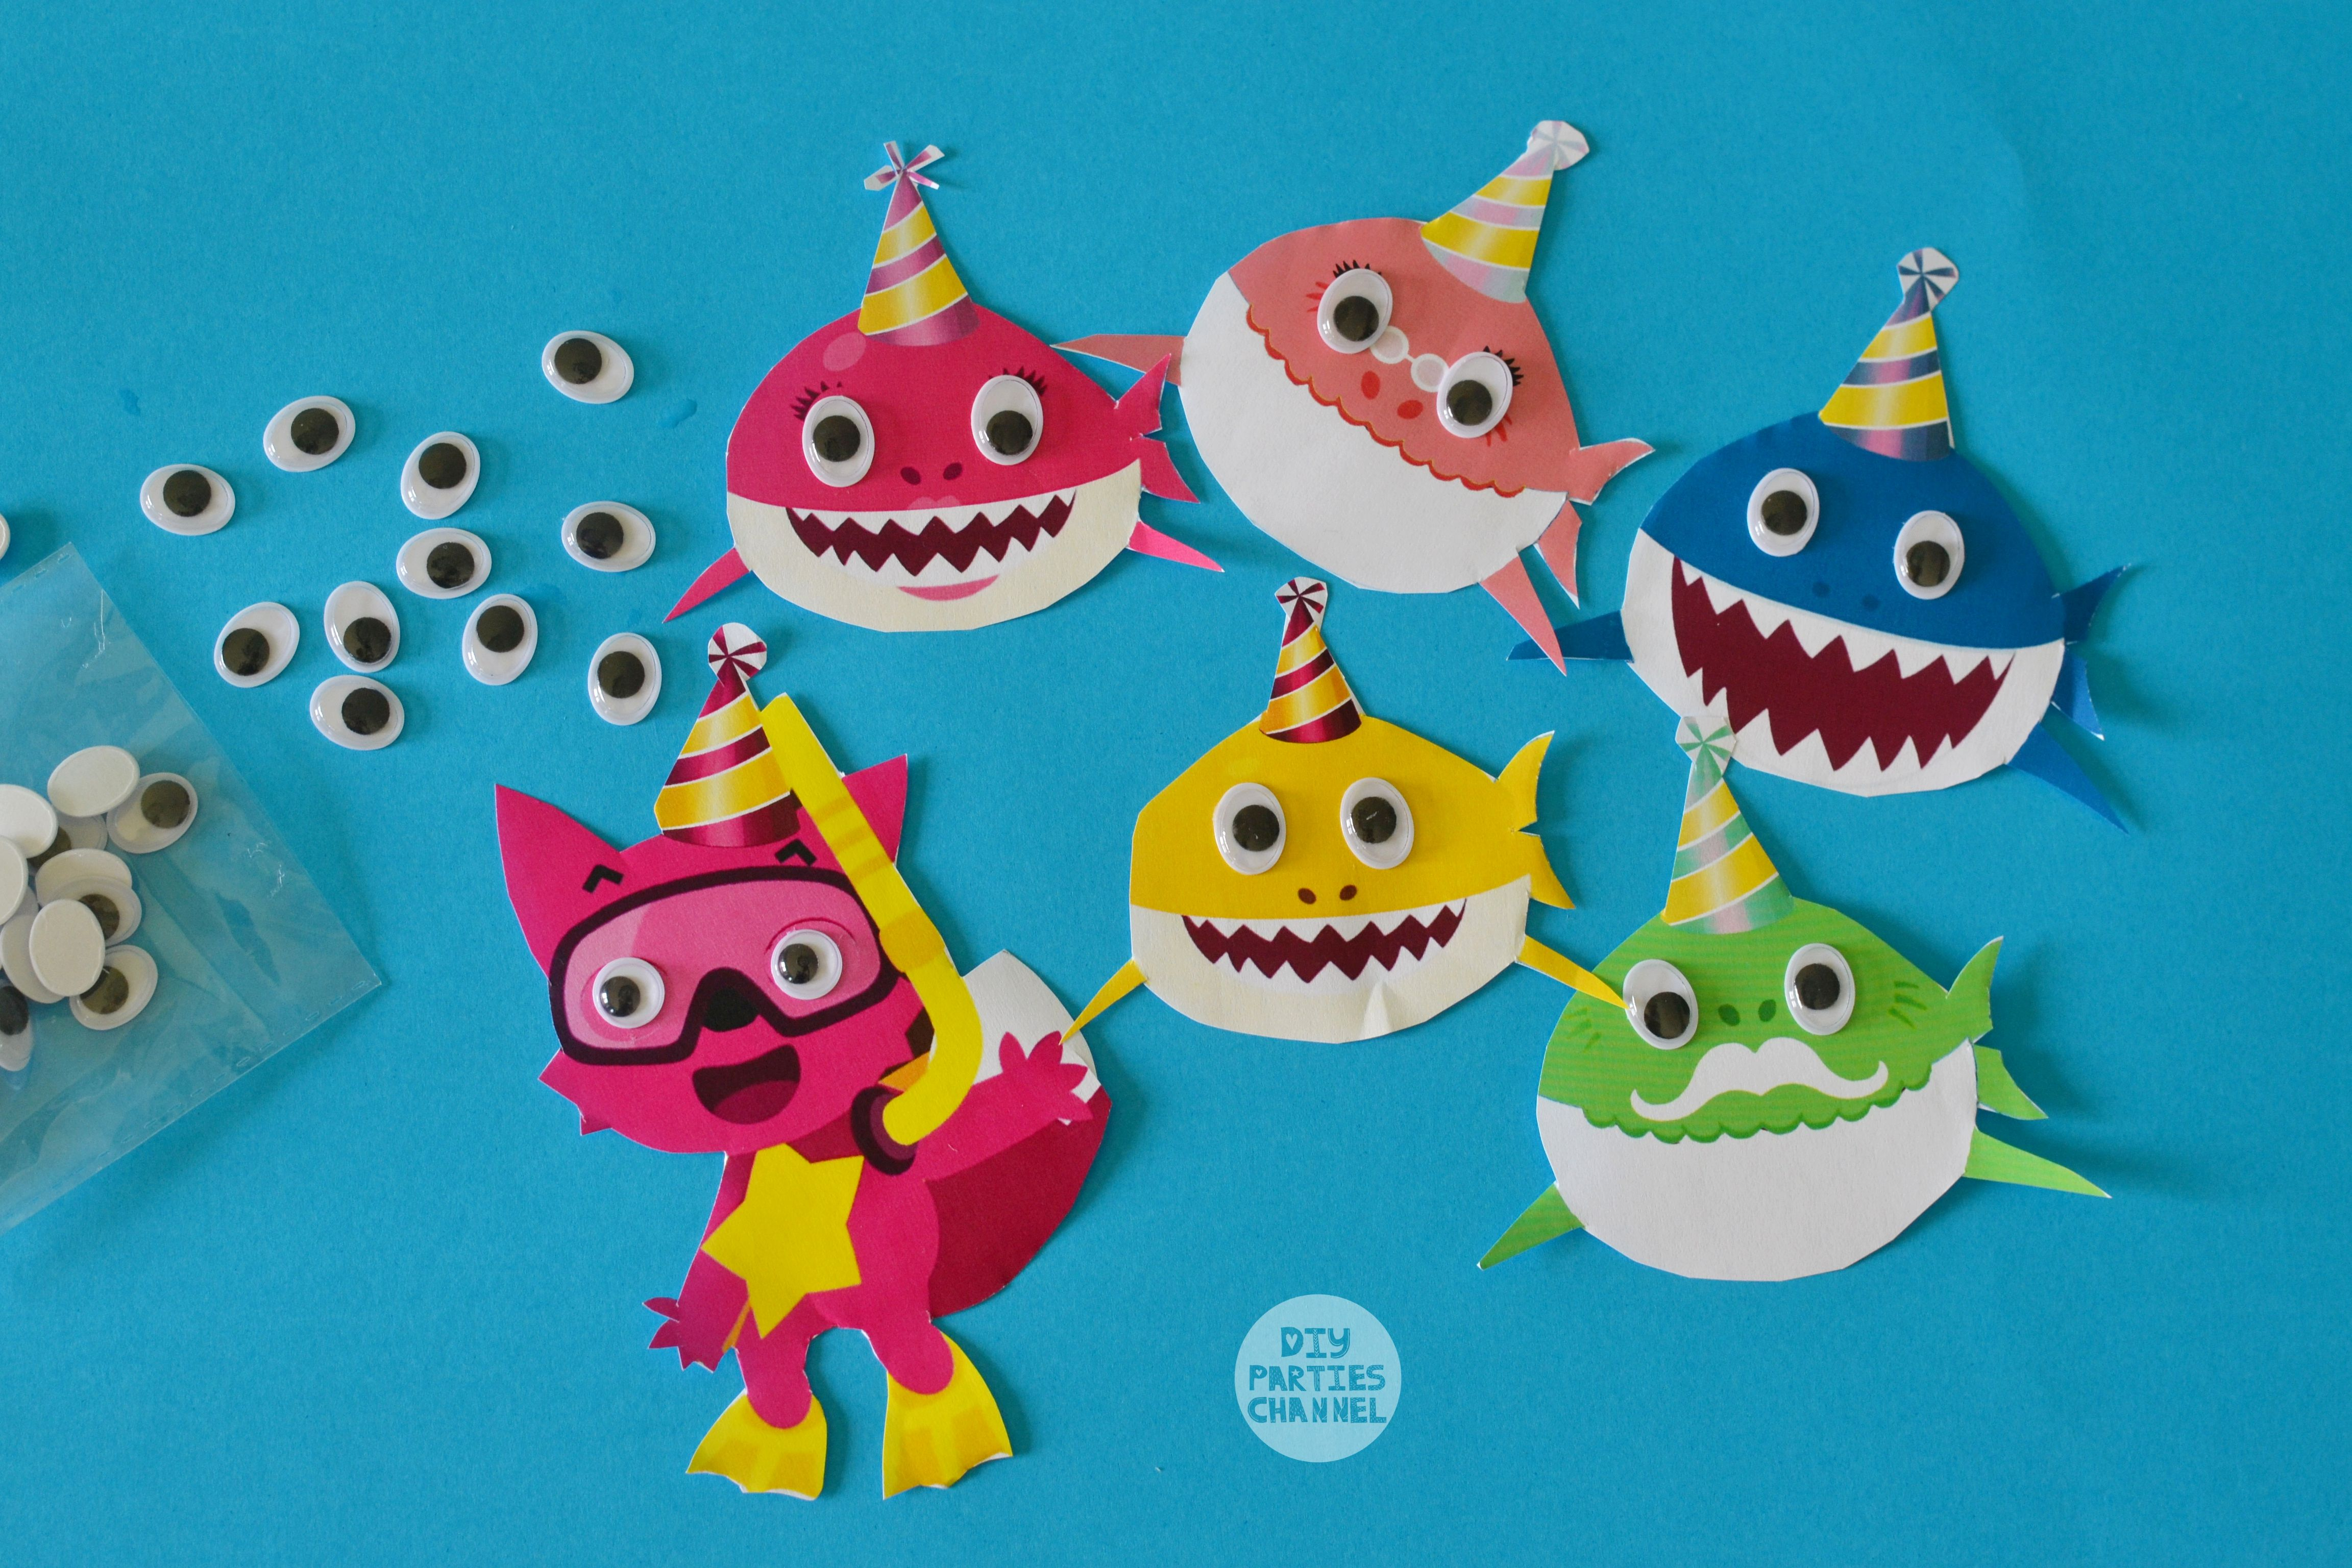 Diy Baby Shark Song Party Decoration Decor Crafts Under